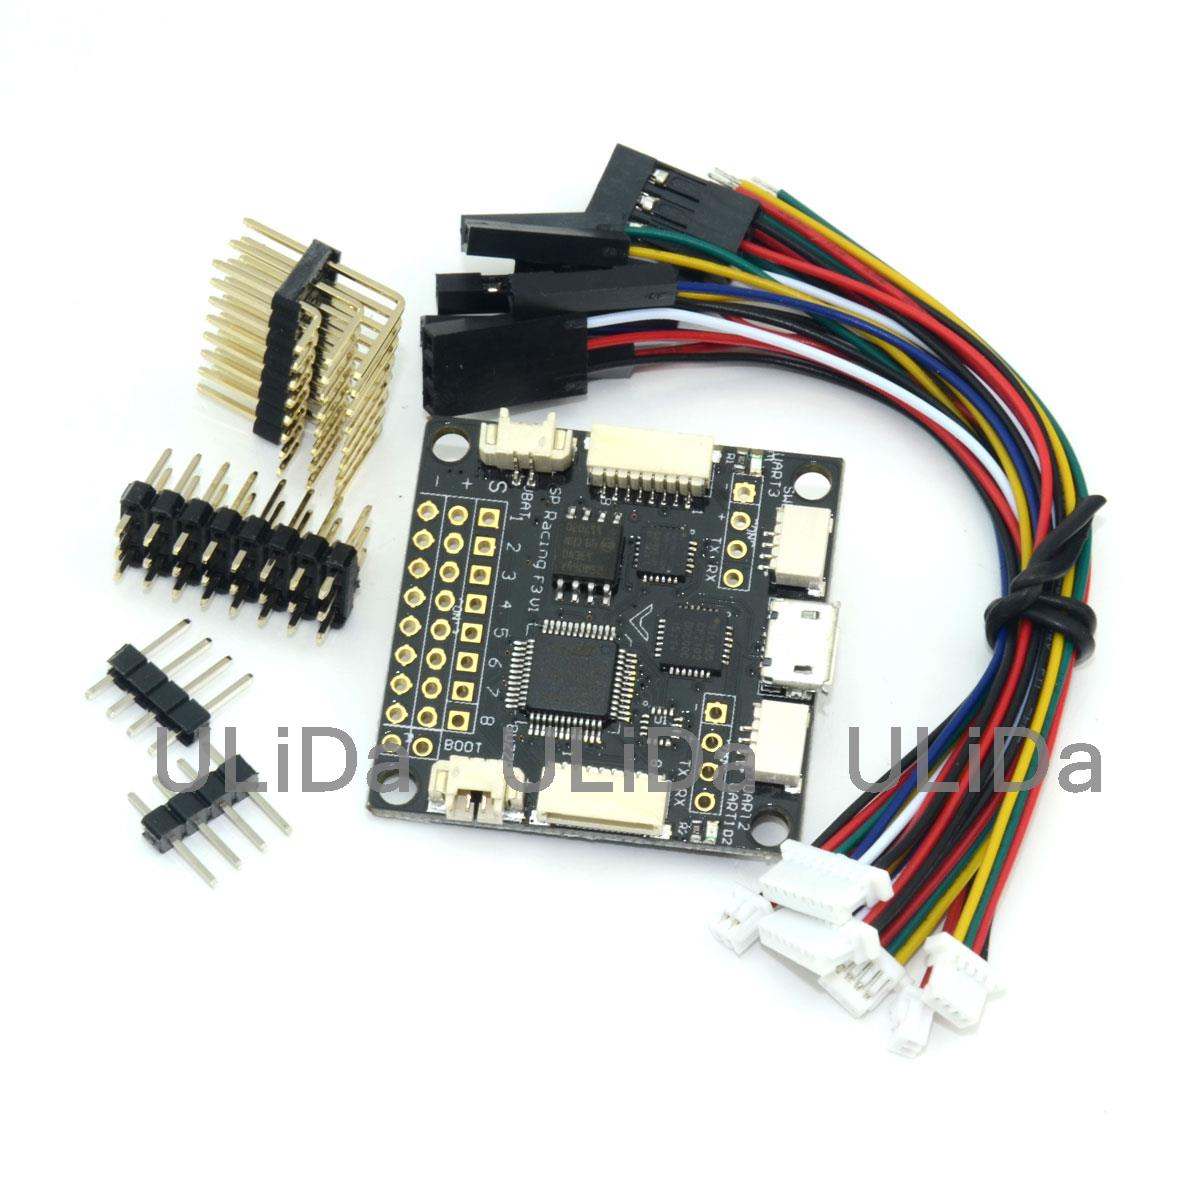 SP Racing F3 ACRO Flight Controller Board FC for FPV Quadcopter Multicopter f3 replacement accessories wire cables pin for f3 flight controller board